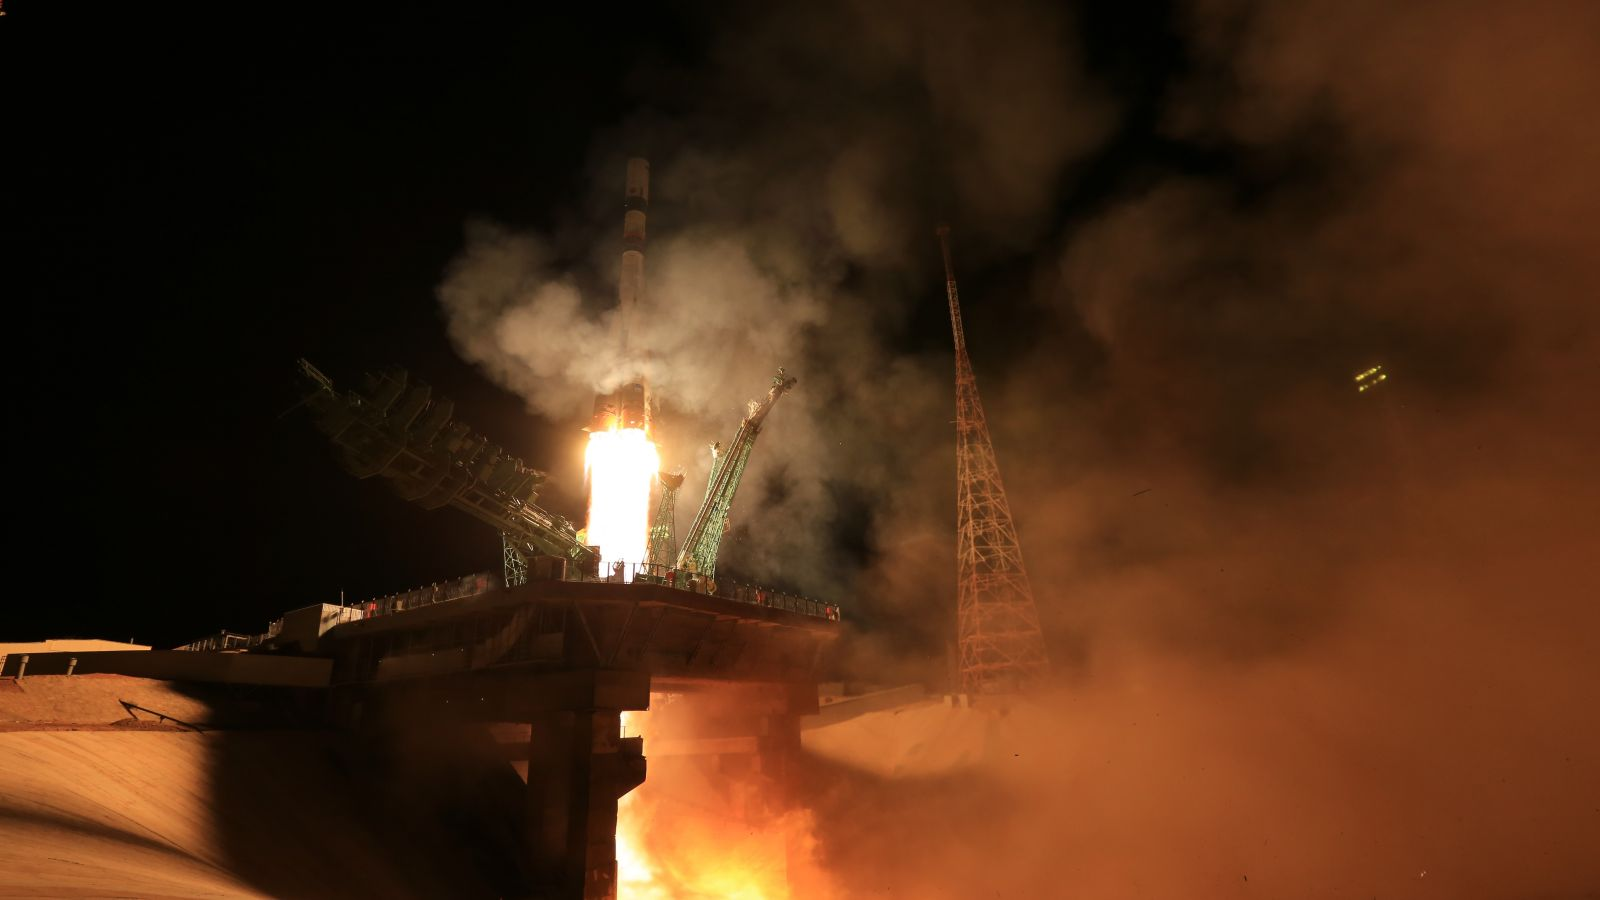 Progress MS-18 is launched atop a Soyuz 2.1a rocket from Baikonur Cosmodrome in Kazakhstan. Credit: Roscosmos